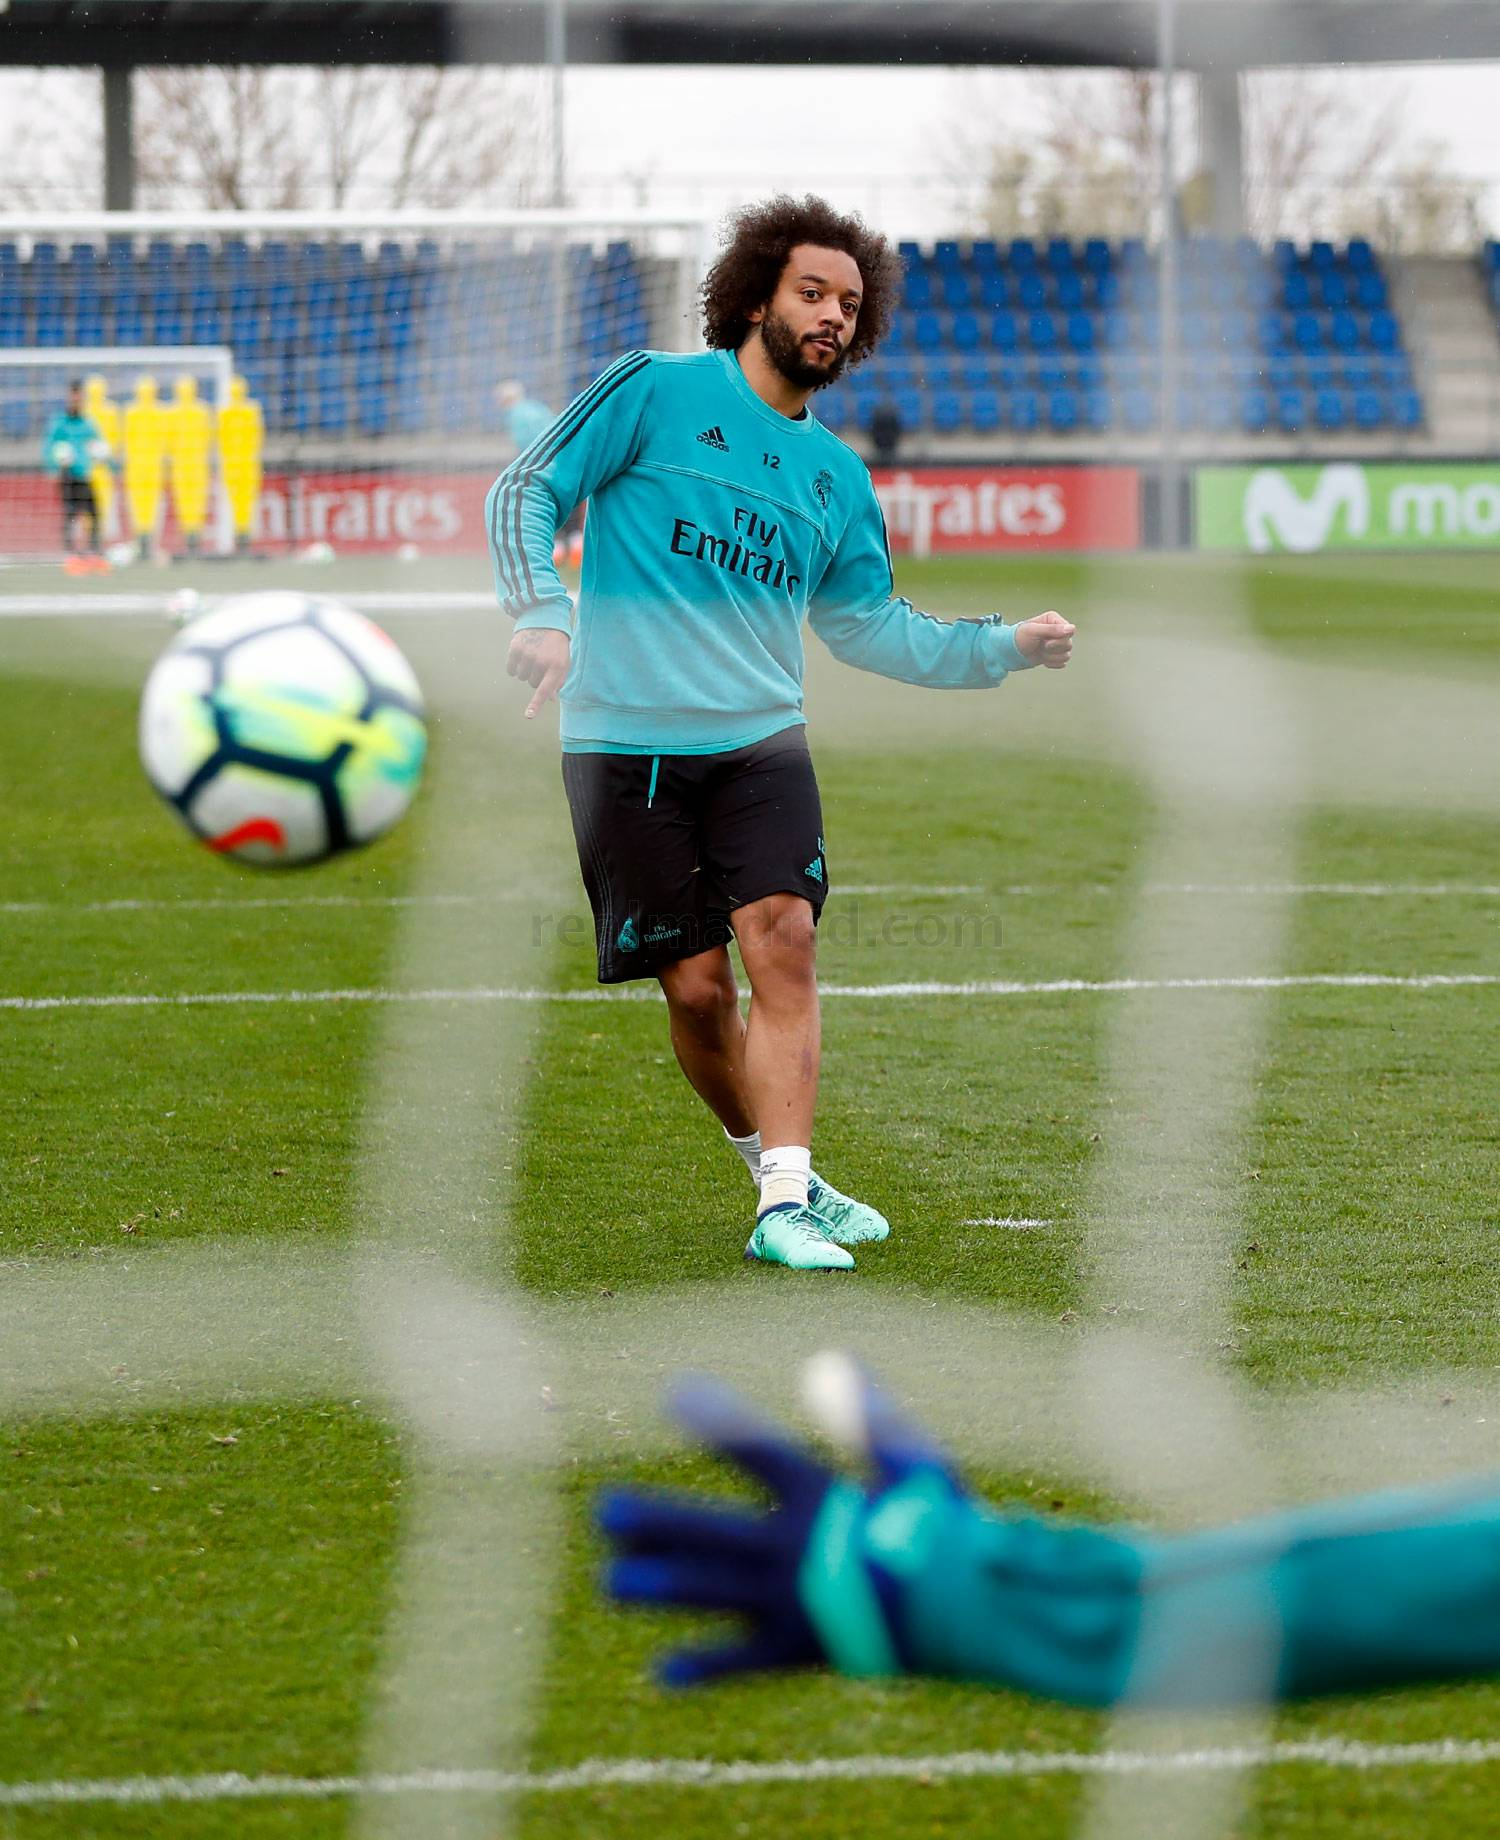 Real Madrid - Entrenamiento del Real Madrid - 07-04-2018